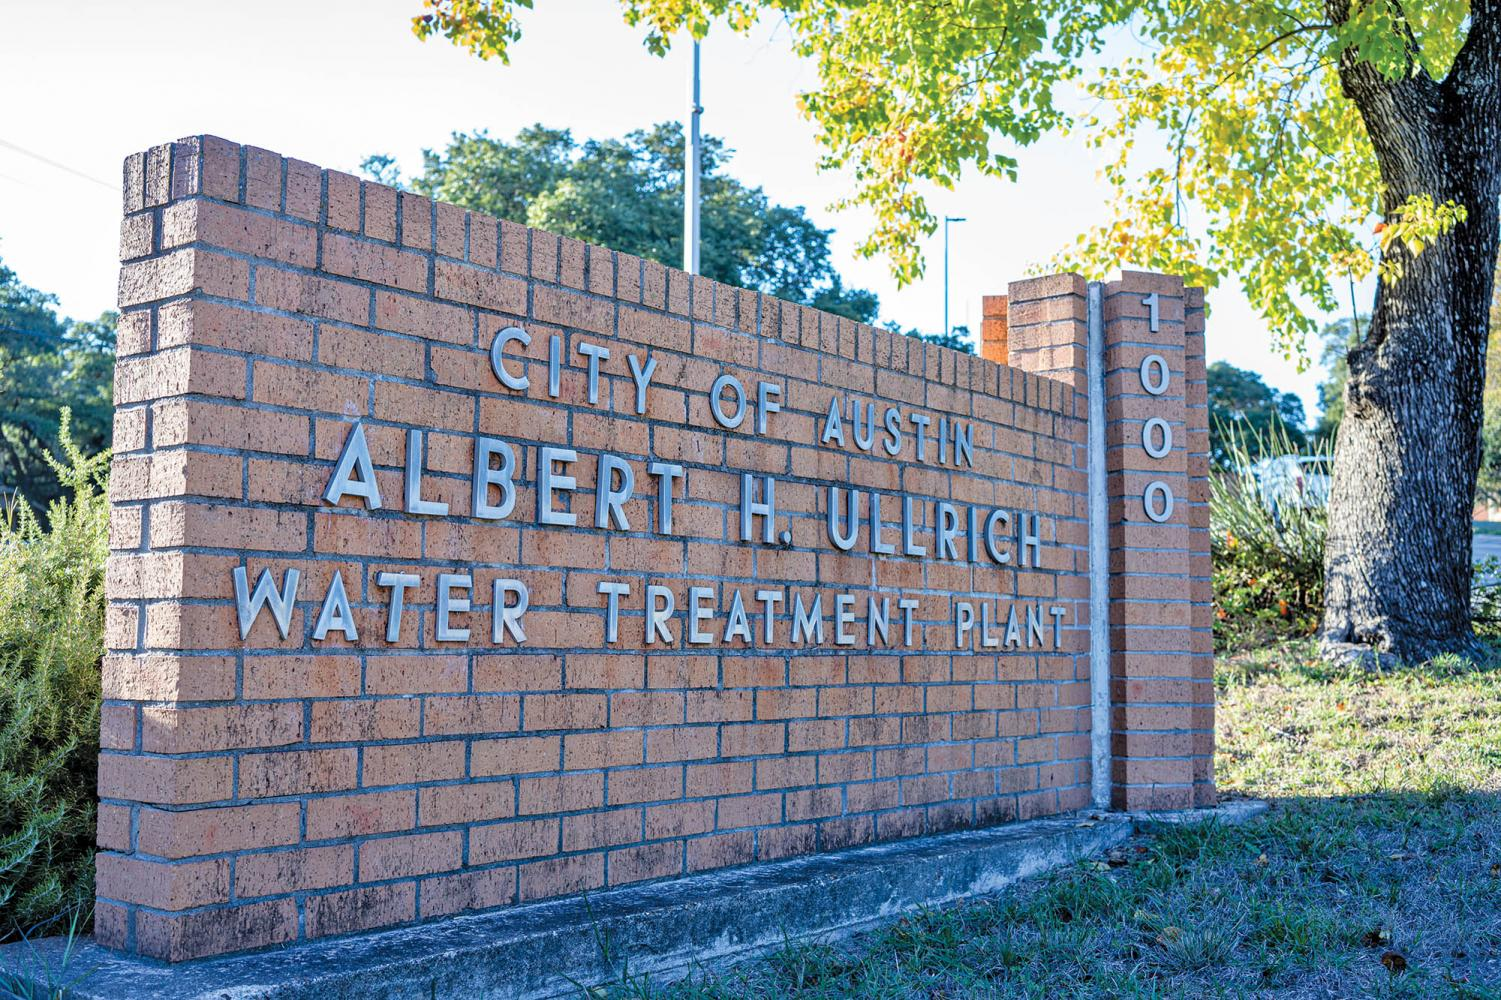 The City of Austin's water treatment plant is located on 1000 Forest View Dr, Austin, TX 78746. The water boil notice in 2018 lasted seven days and affected citywide water quality.